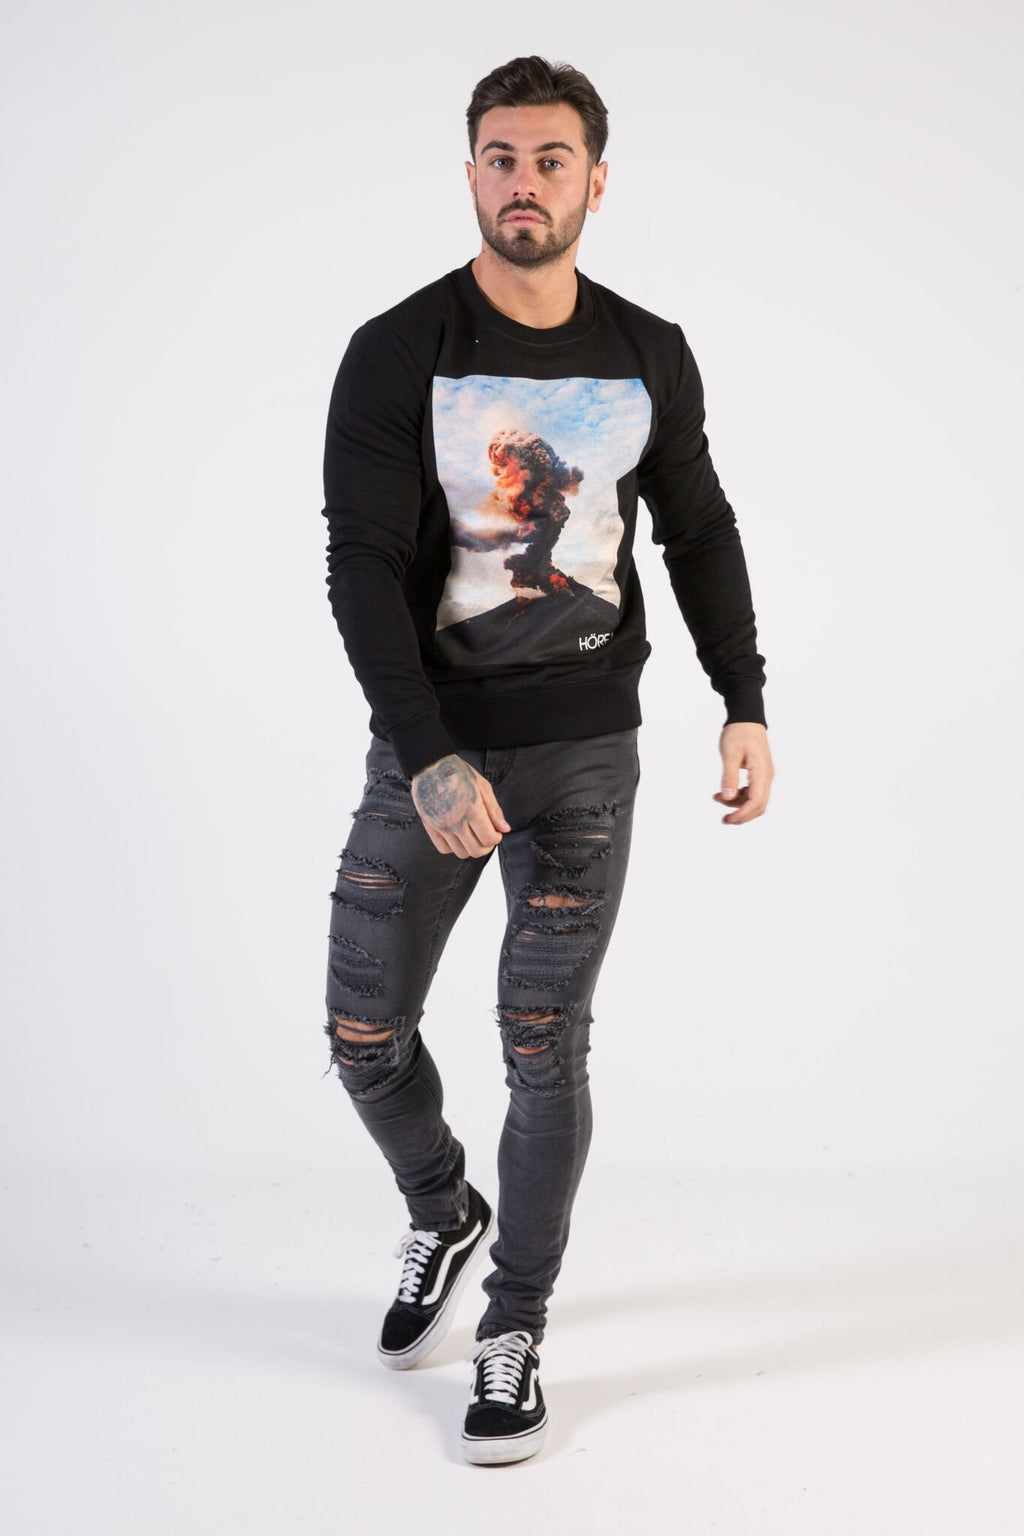 ERUPTION Sweatshirt - HÖRFA is a men's global fashion brand that provides products such as Fashionable Watches, Wallets, Sunglasses, Belts, Beard and Male Grooming Products